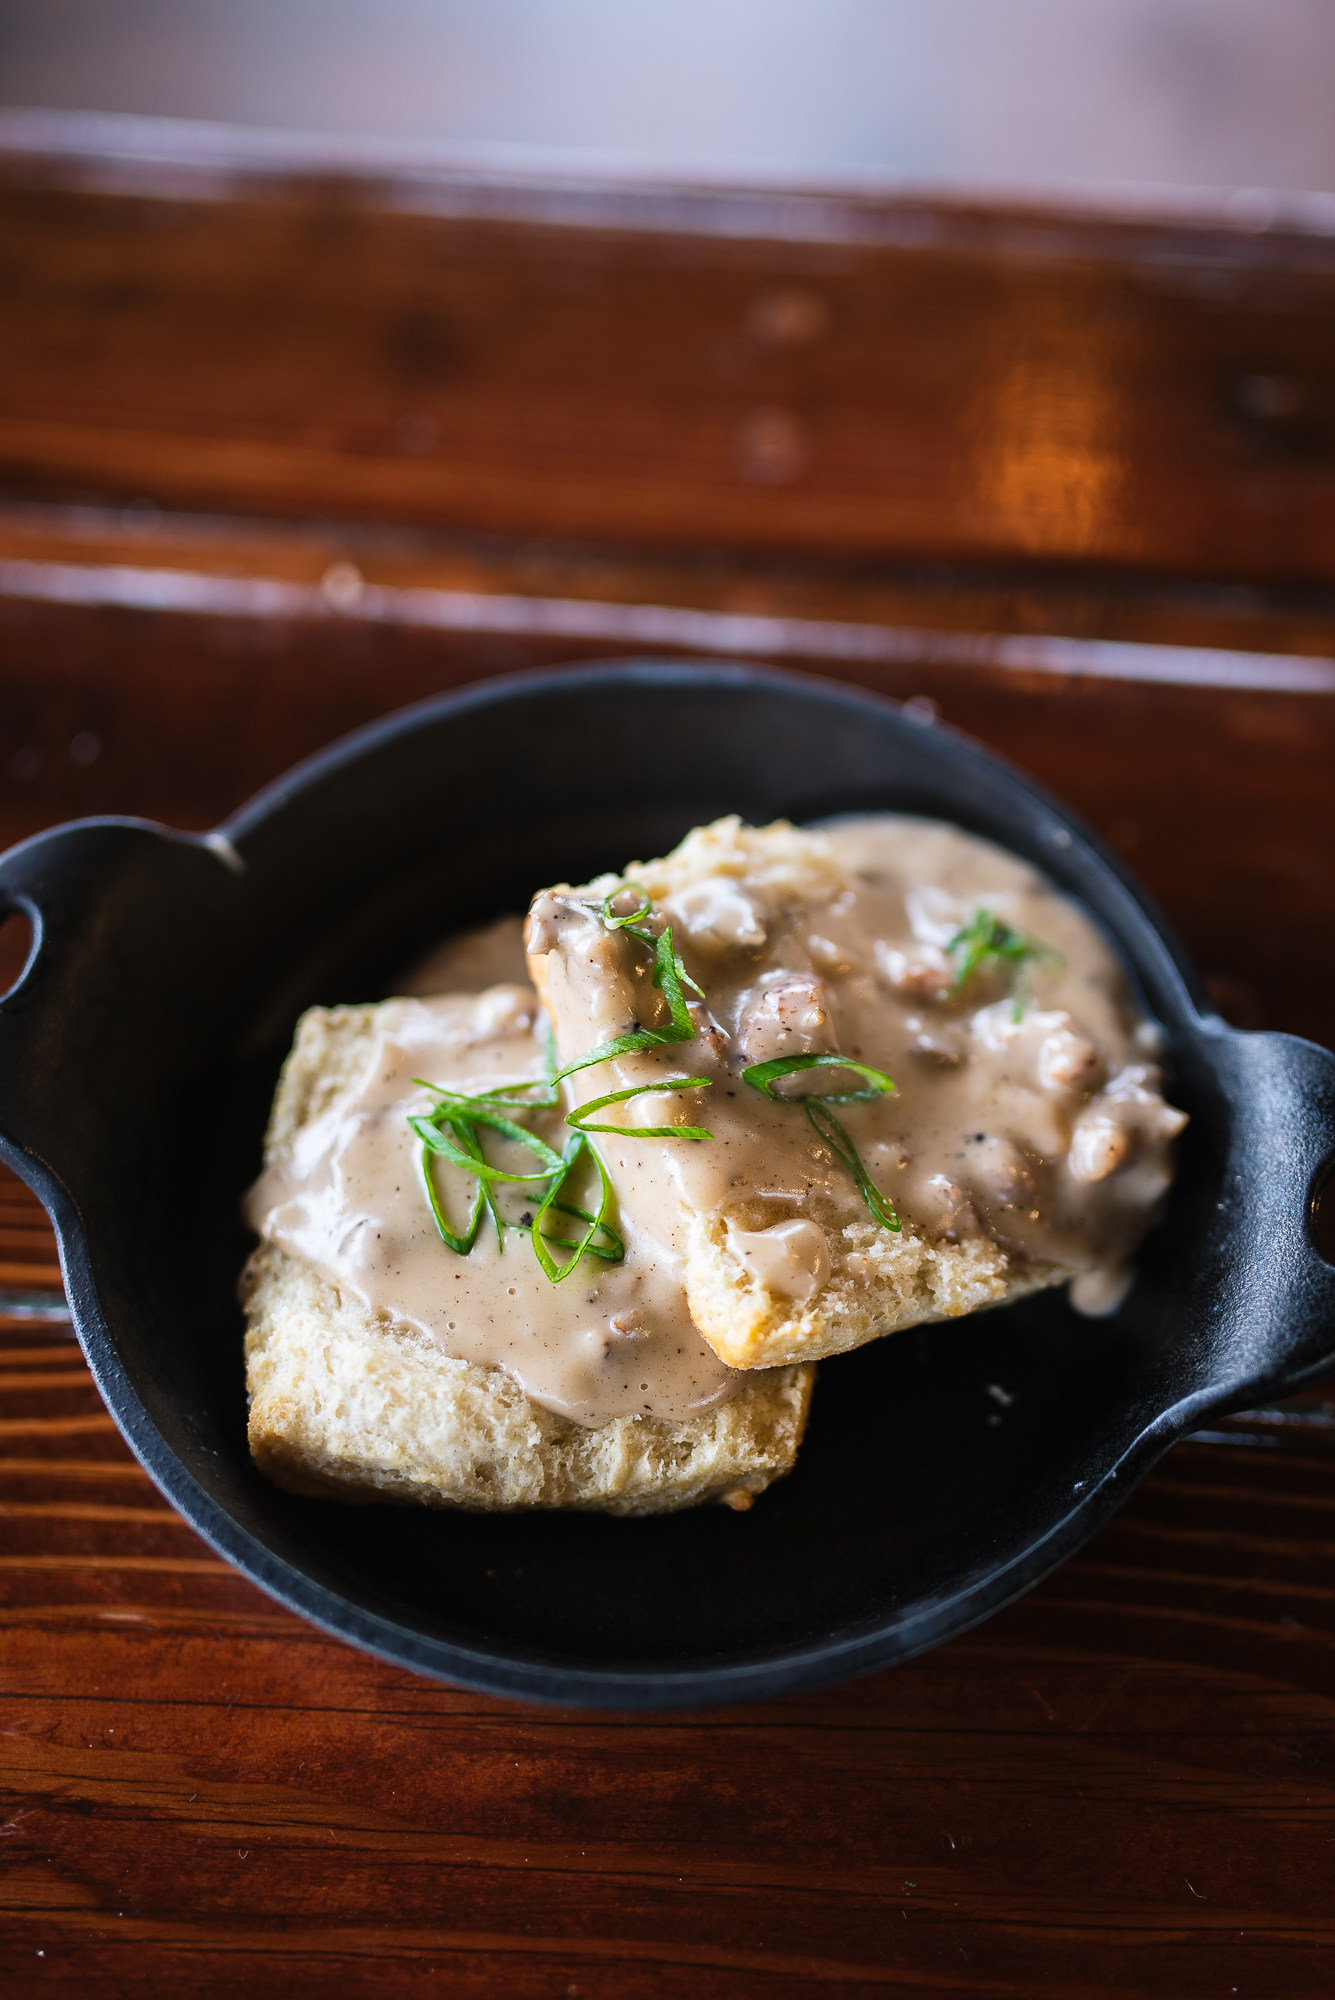 Biscuits & gravy -